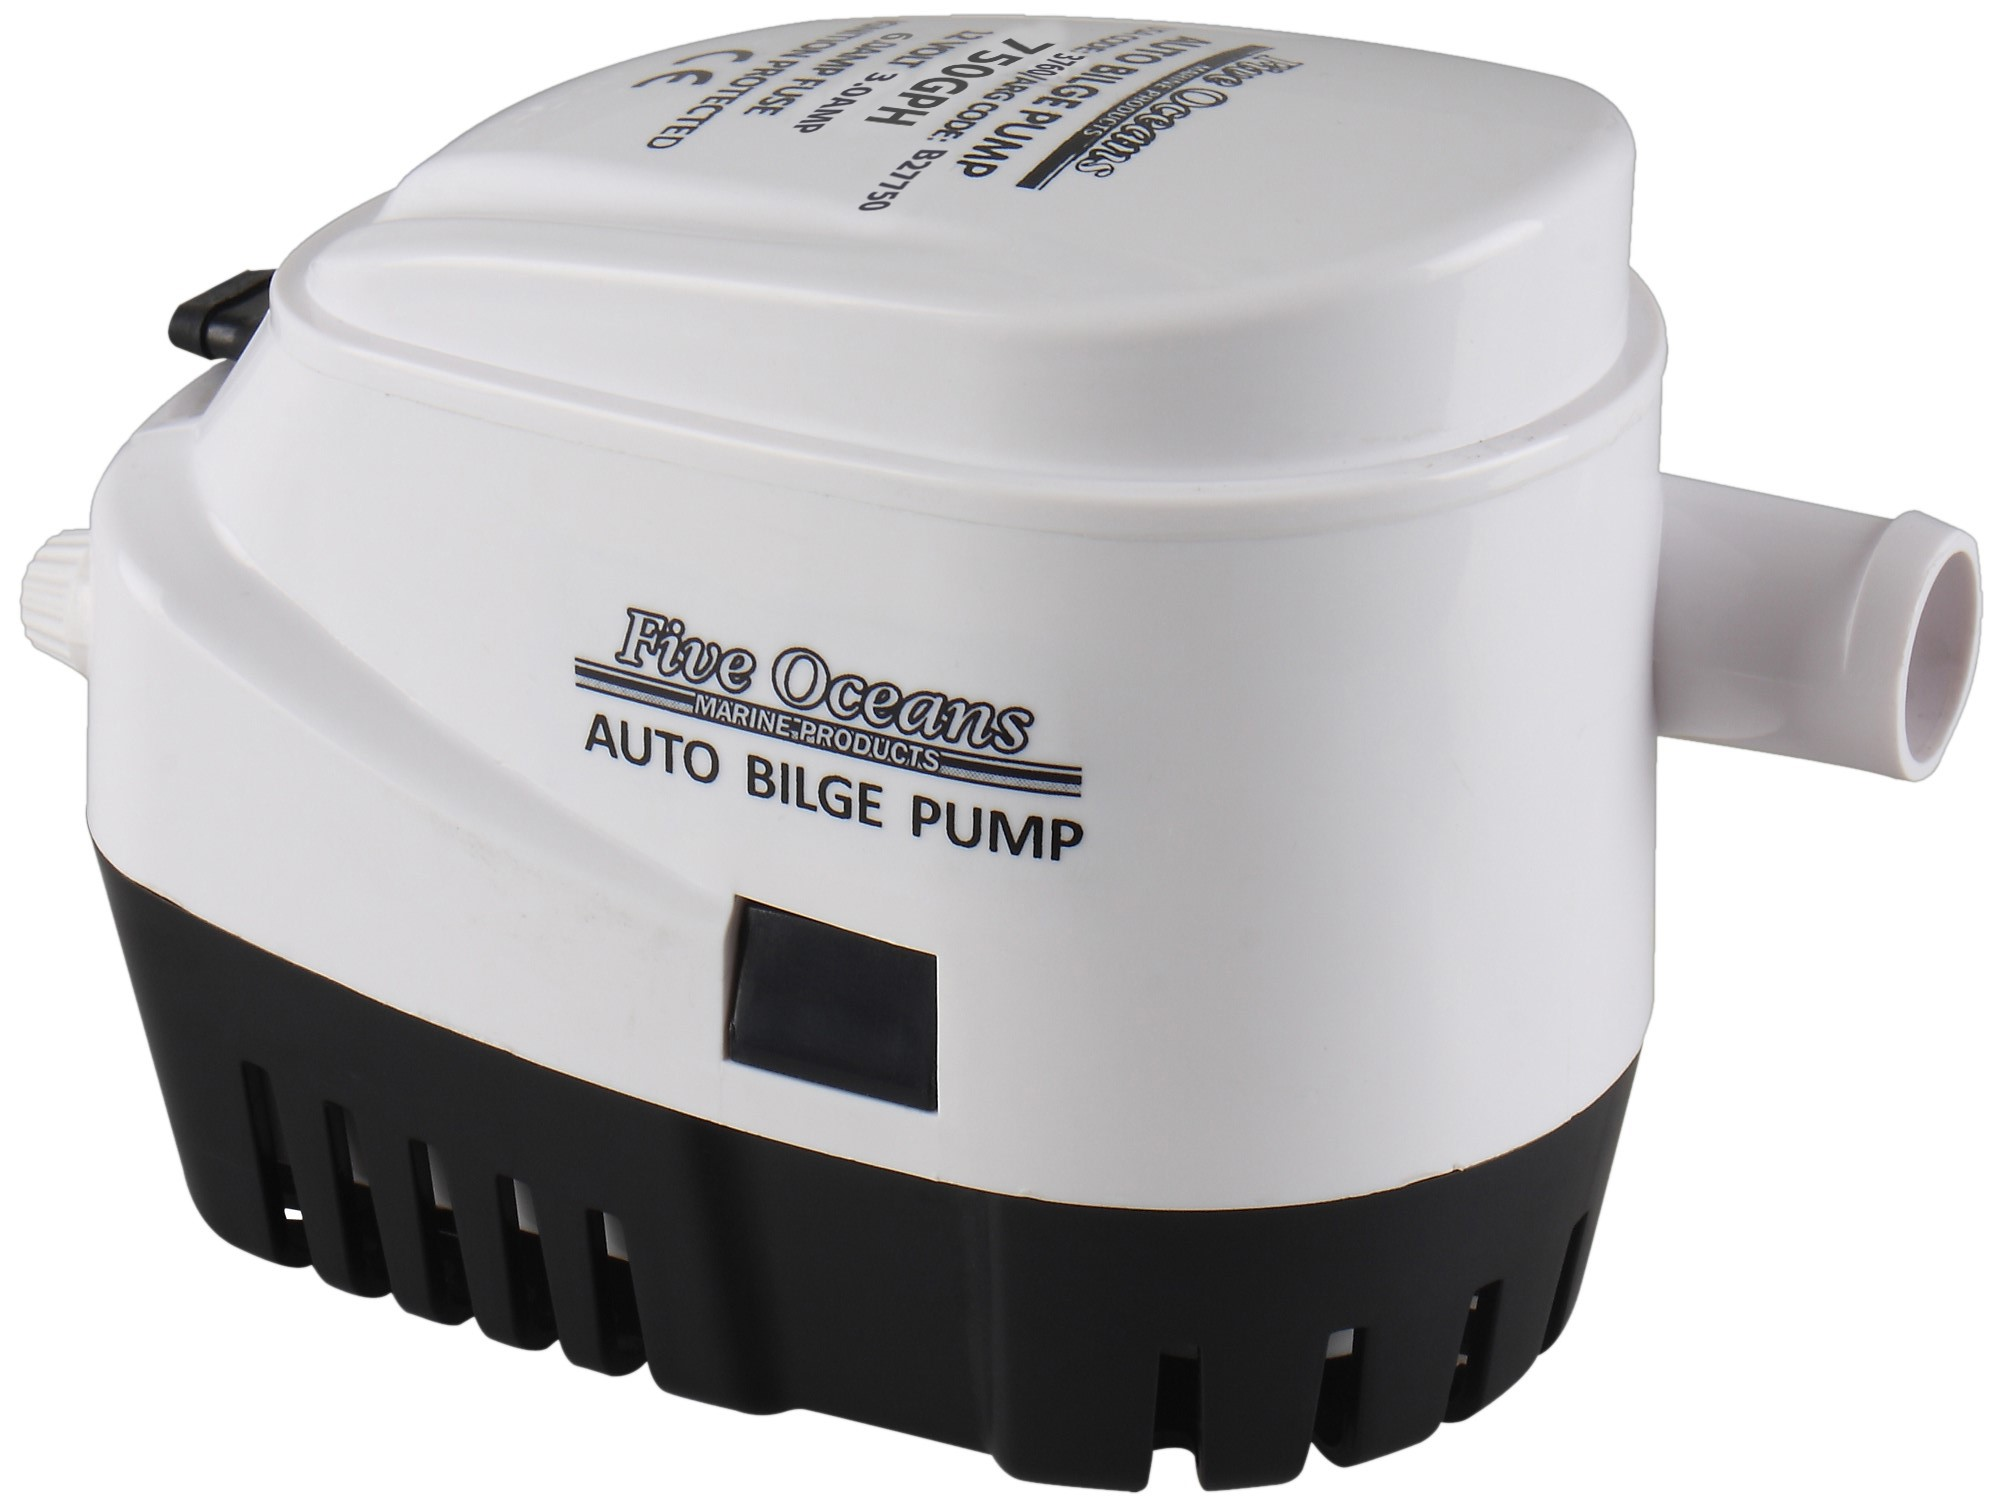 750gph 12v Electric Marine Automatic Bilge Pump (Boat, Caravan, Rv)� Five Oceans by Seaflo by